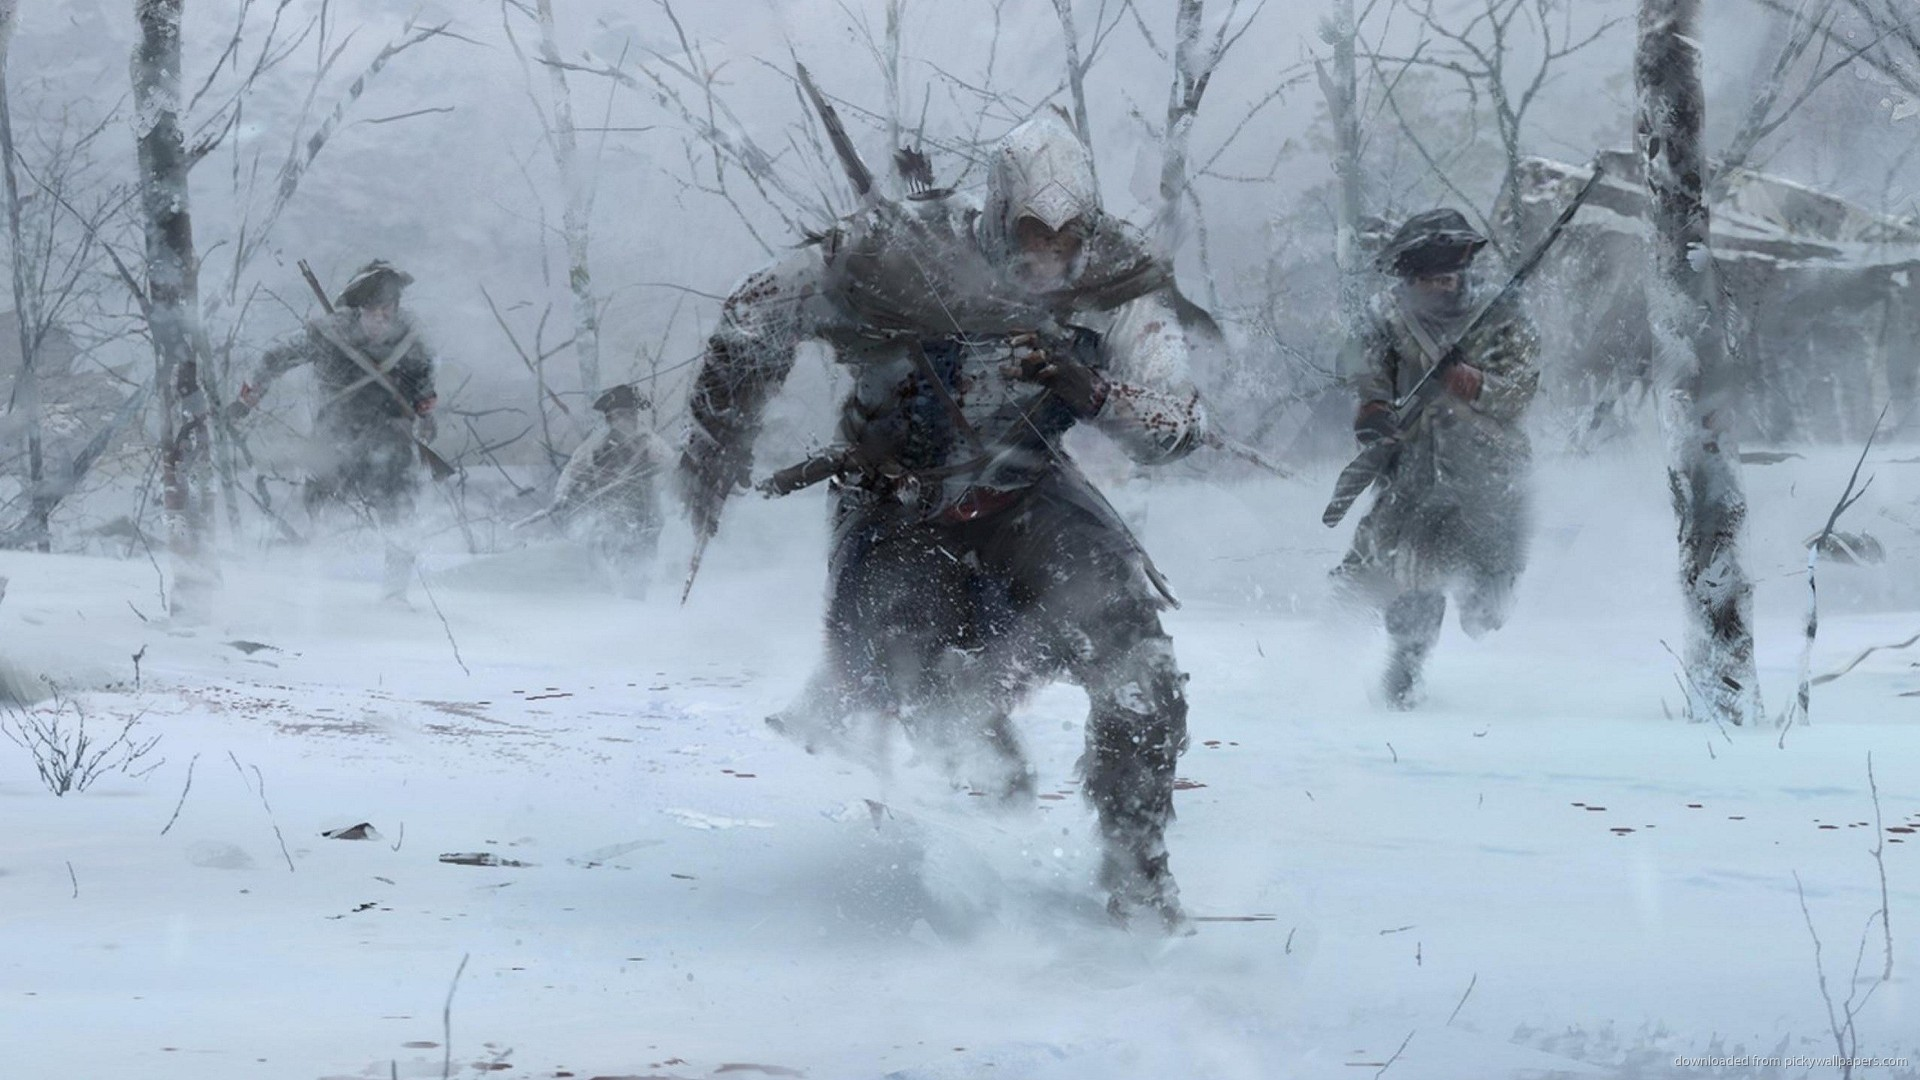 1920x1080 Assassins Creed 3 Winter Forest Run for